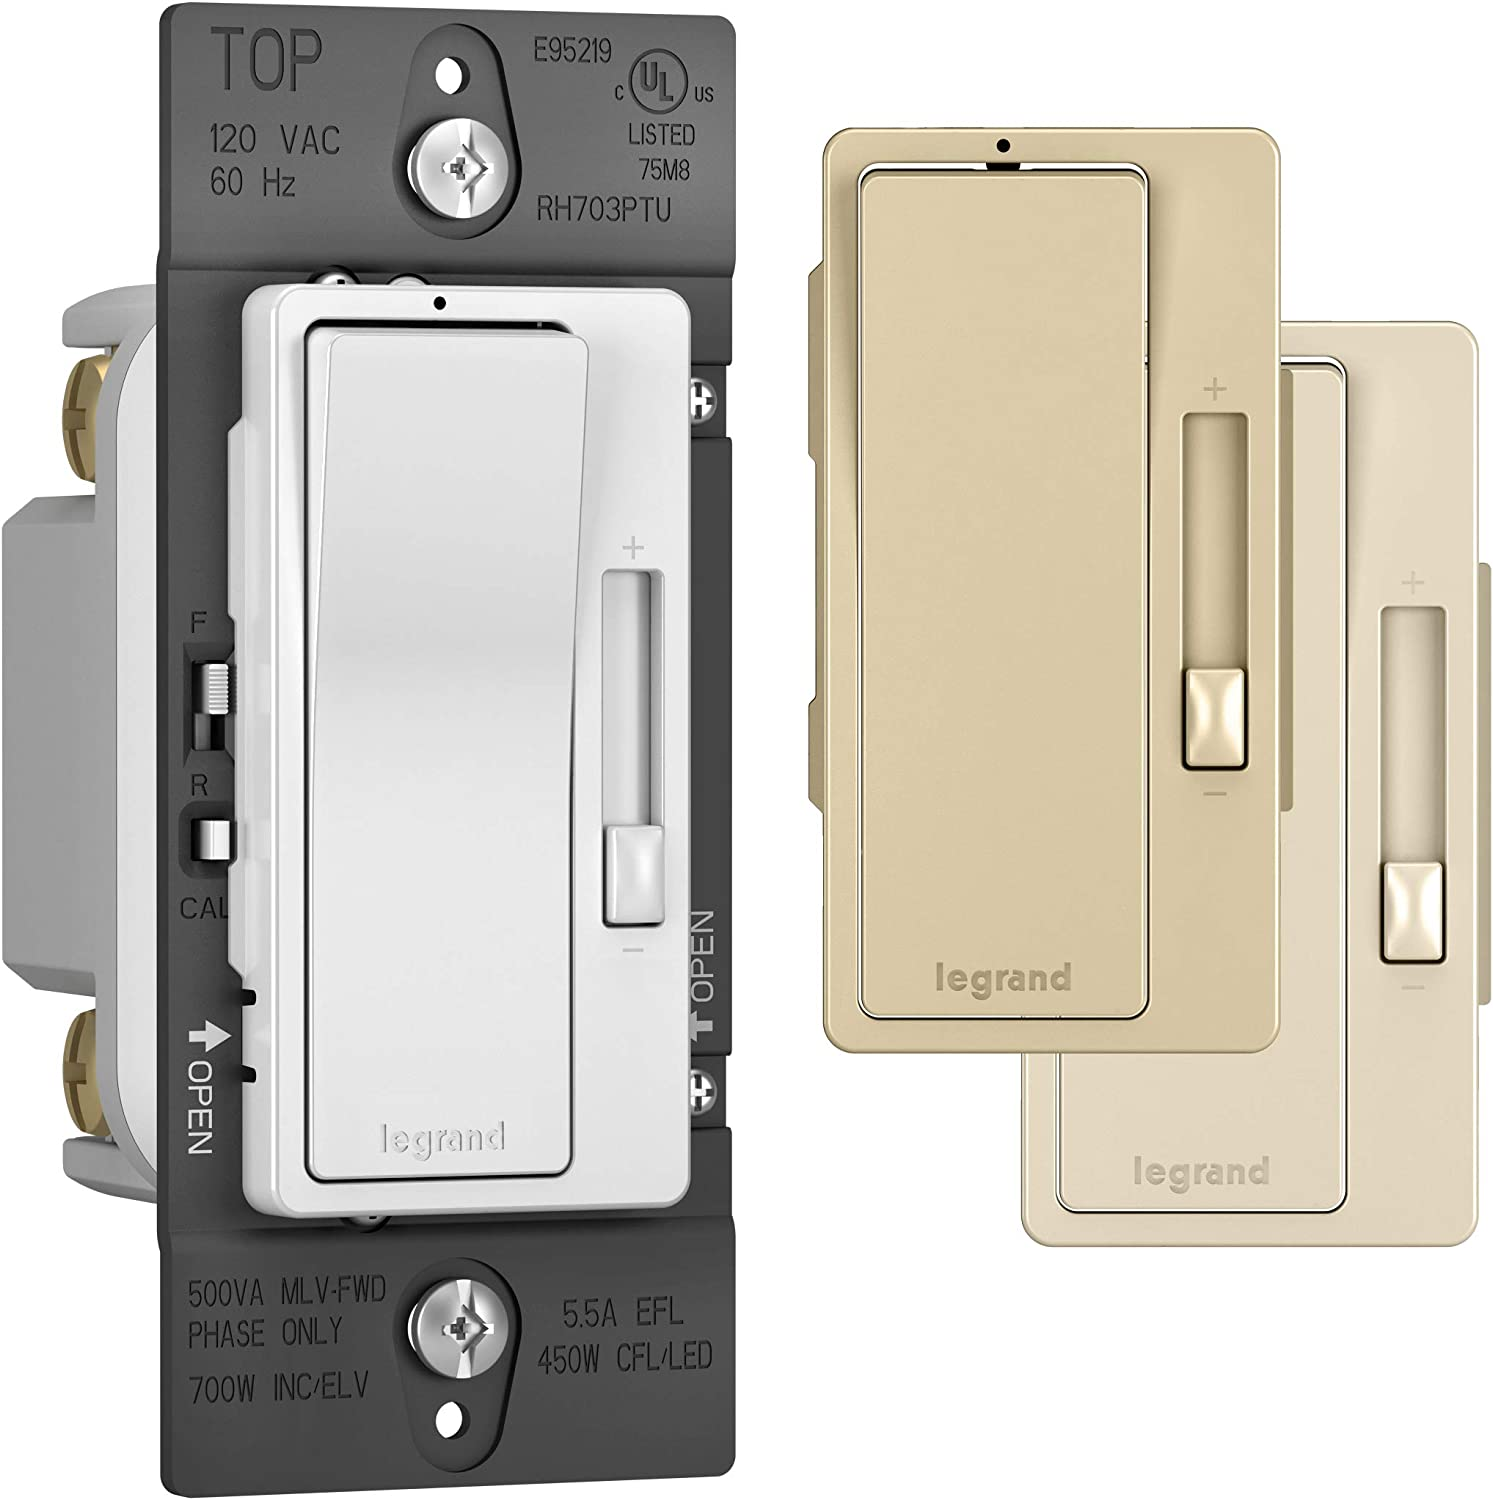 Legrand radiant Dimmer Light Switch, Tru Universal Auto Calibration Switch, Works for All Light Loads, 450W LED and CFL Bulbs - 700W Incandescent, ELV & Halogen, Tri Color, RH703PTUTCCCV4